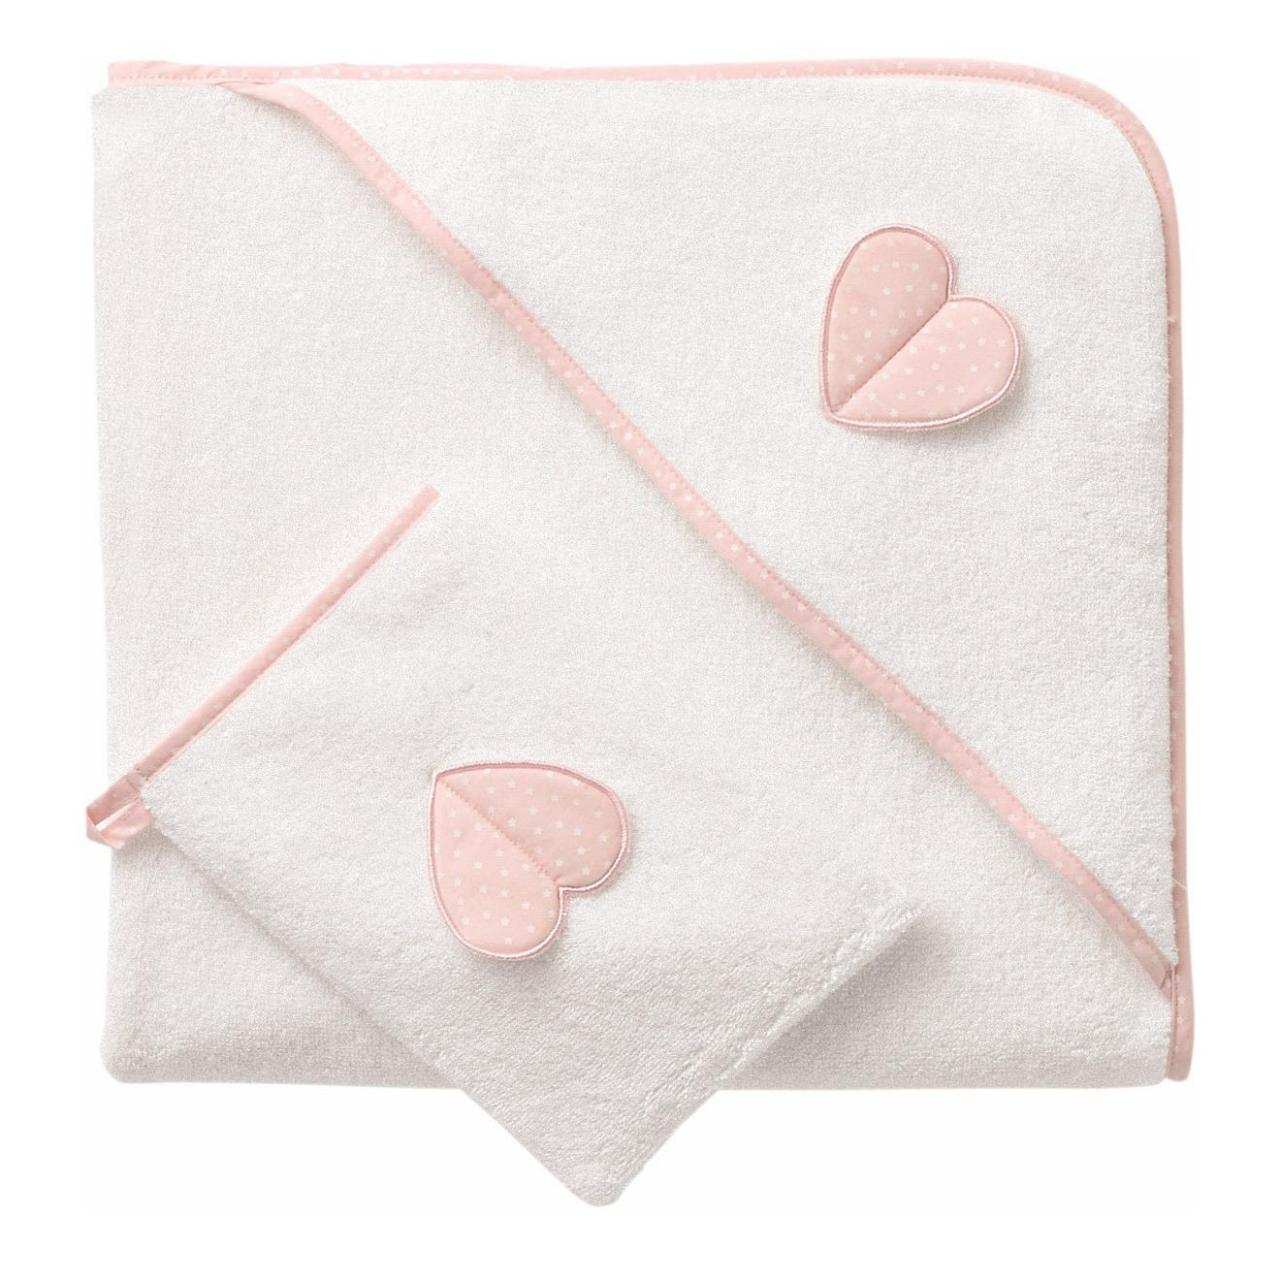 Buy cheap China Organic Bamboo Fiber Terry Custom Hooded Bath Towel, Baby Hooded Towel Round Towel from wholesalers